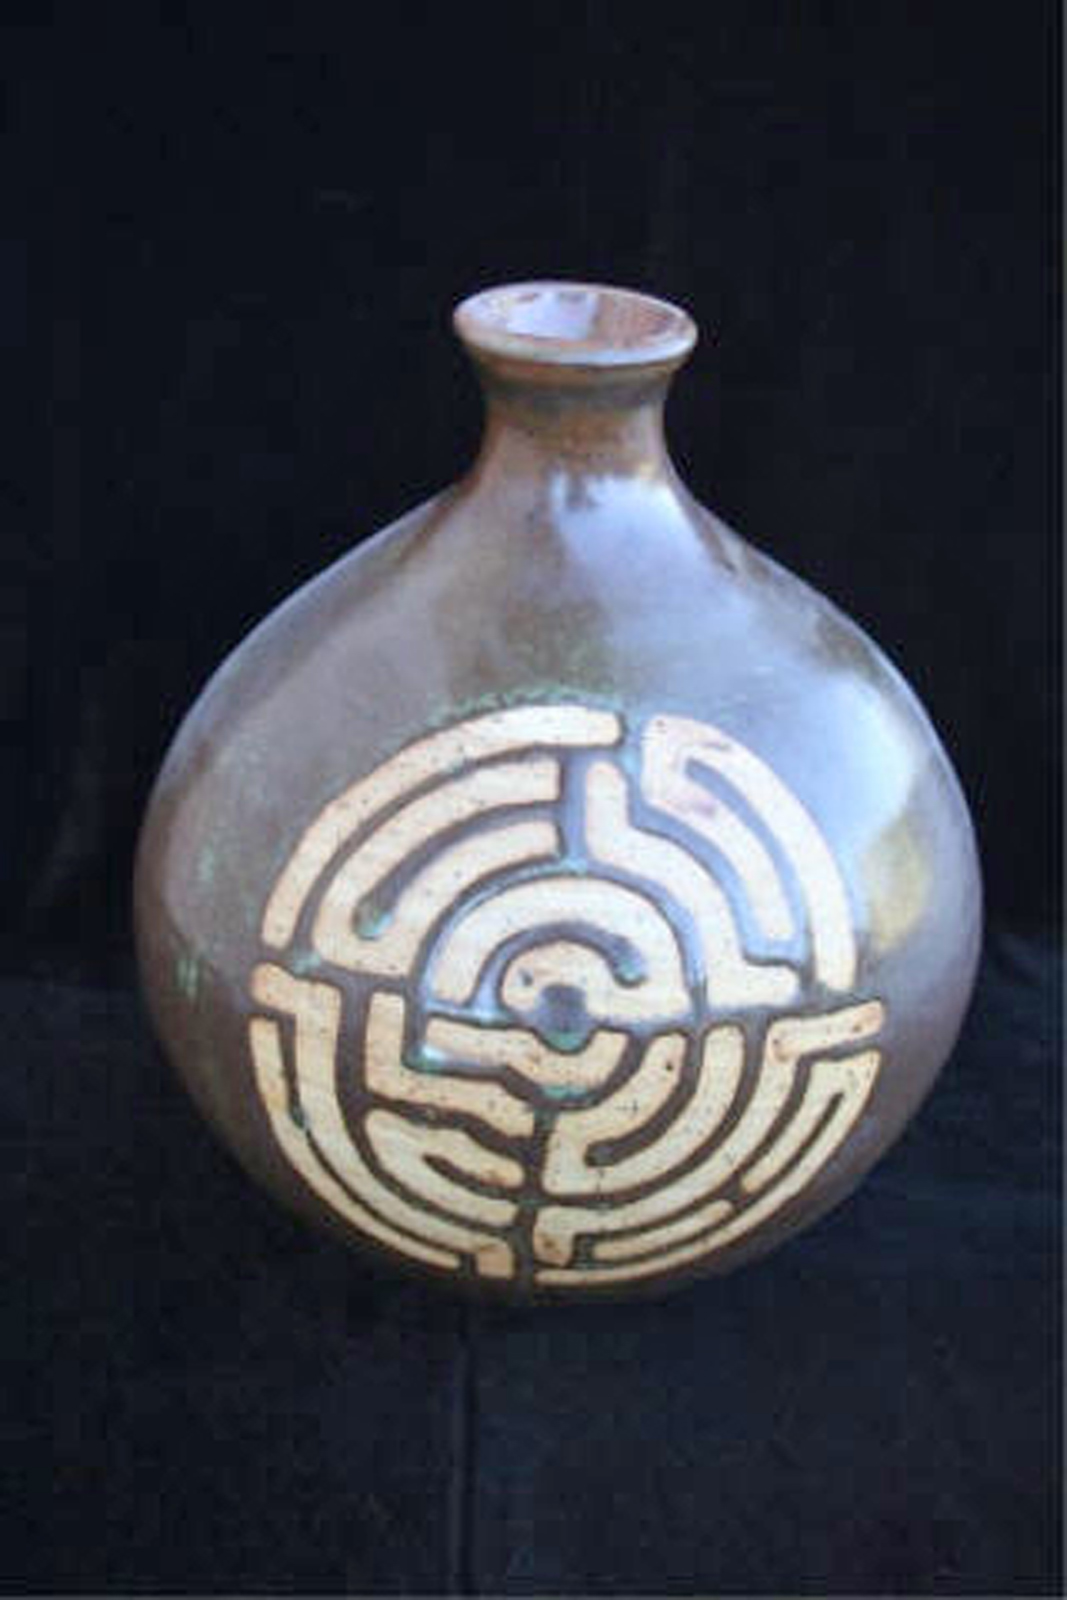 """Labyrinth in Iron  , 2007, wheel-thrown stoneware Fired at cone 6 oxidation, 8 1/2"""" h x 7 1/2 dia Collection of Mrs. Andrienne M. Kravchuk, San Diego, CA"""